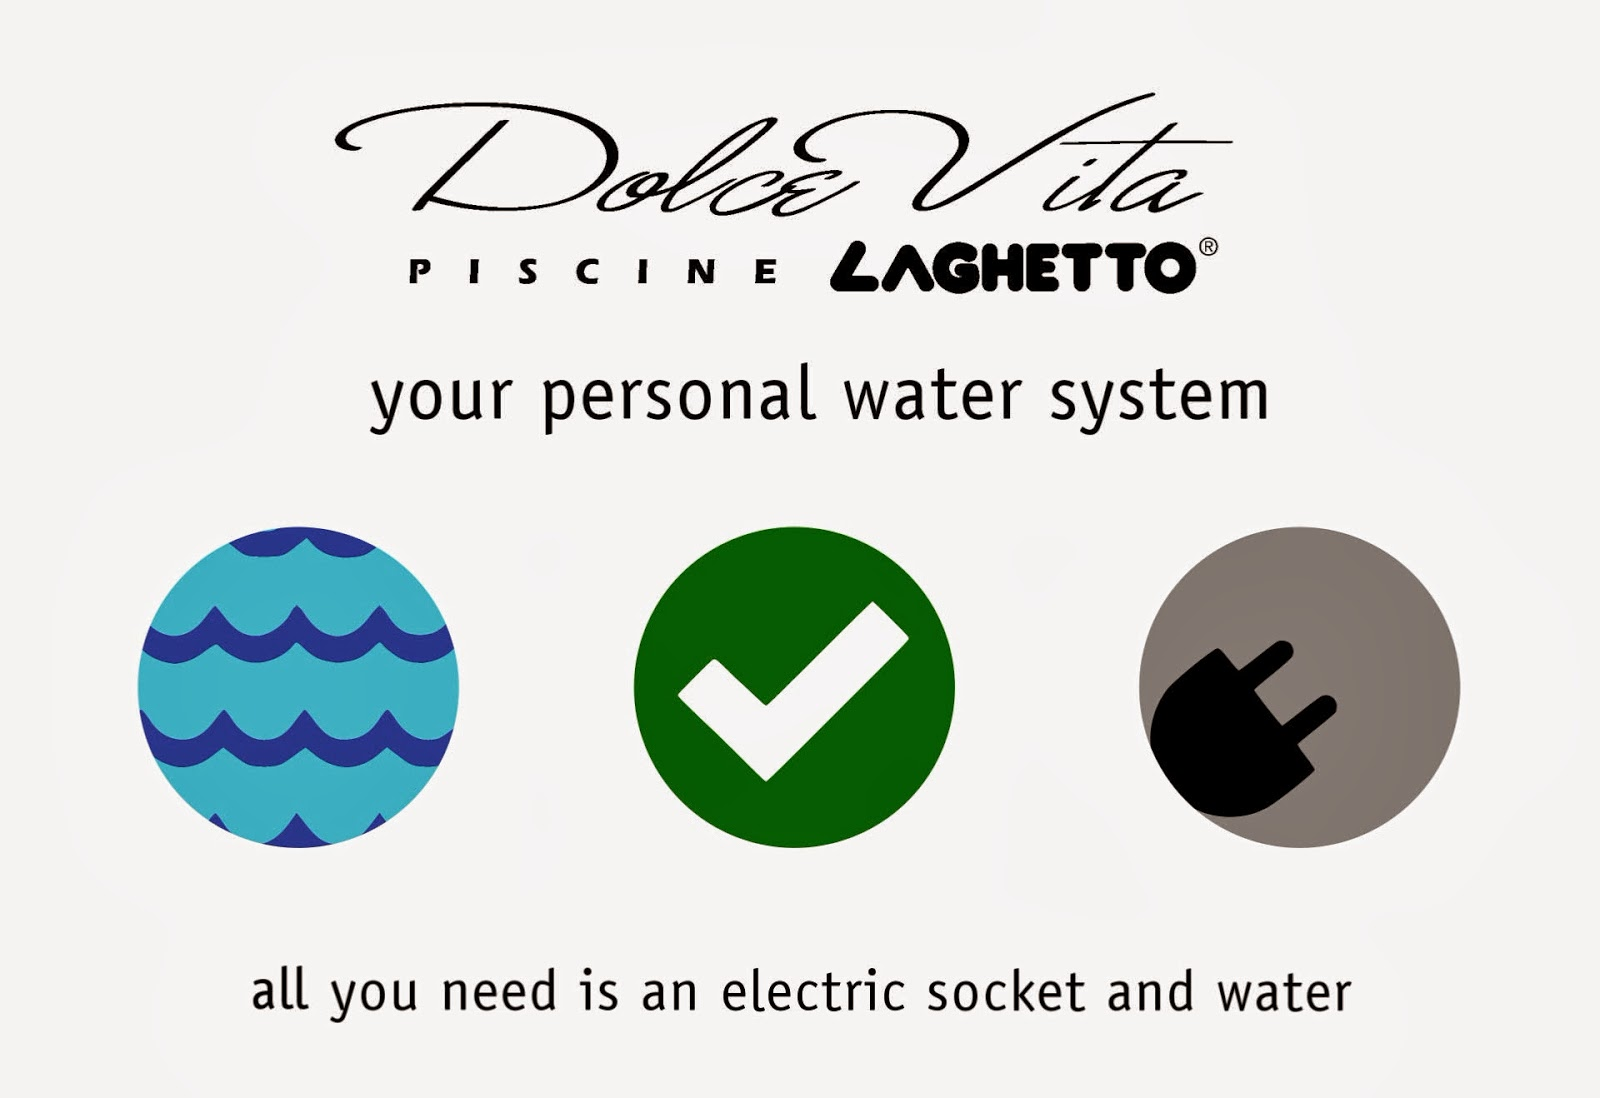 Dolcevita water system il video piscine laghetto news blog for Piscine montabili